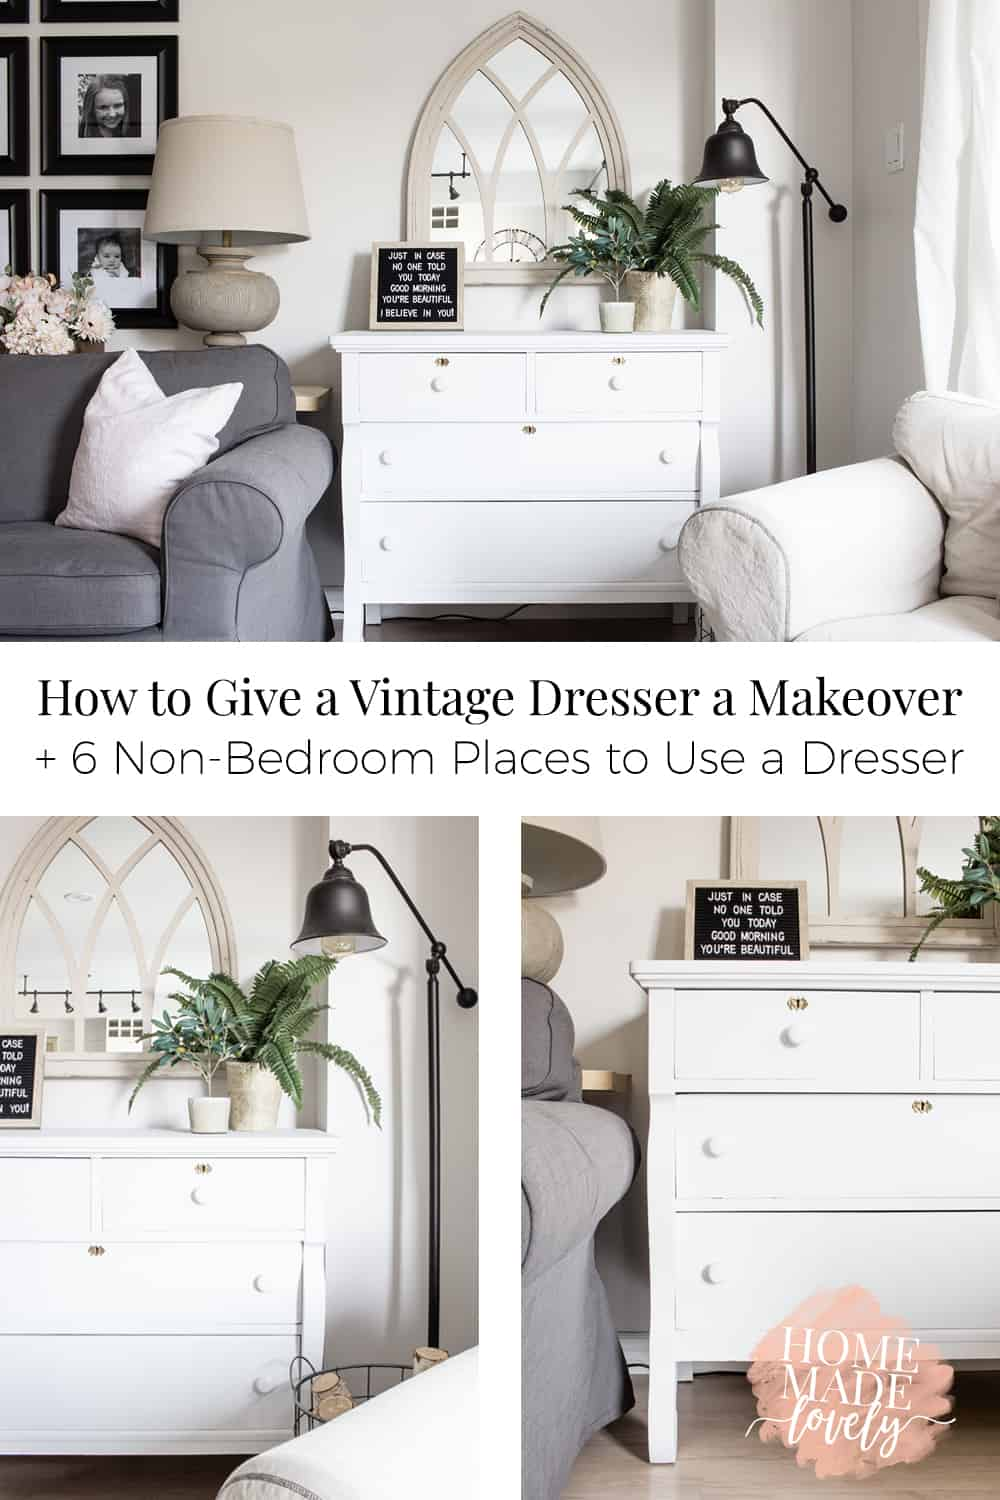 Sometimes there's nothing like a vintage piece to bring some extra character - and storage space to a room. Here's how to give a vintage dresser a makeover and 6 non-bedroom places to use a dresser too!